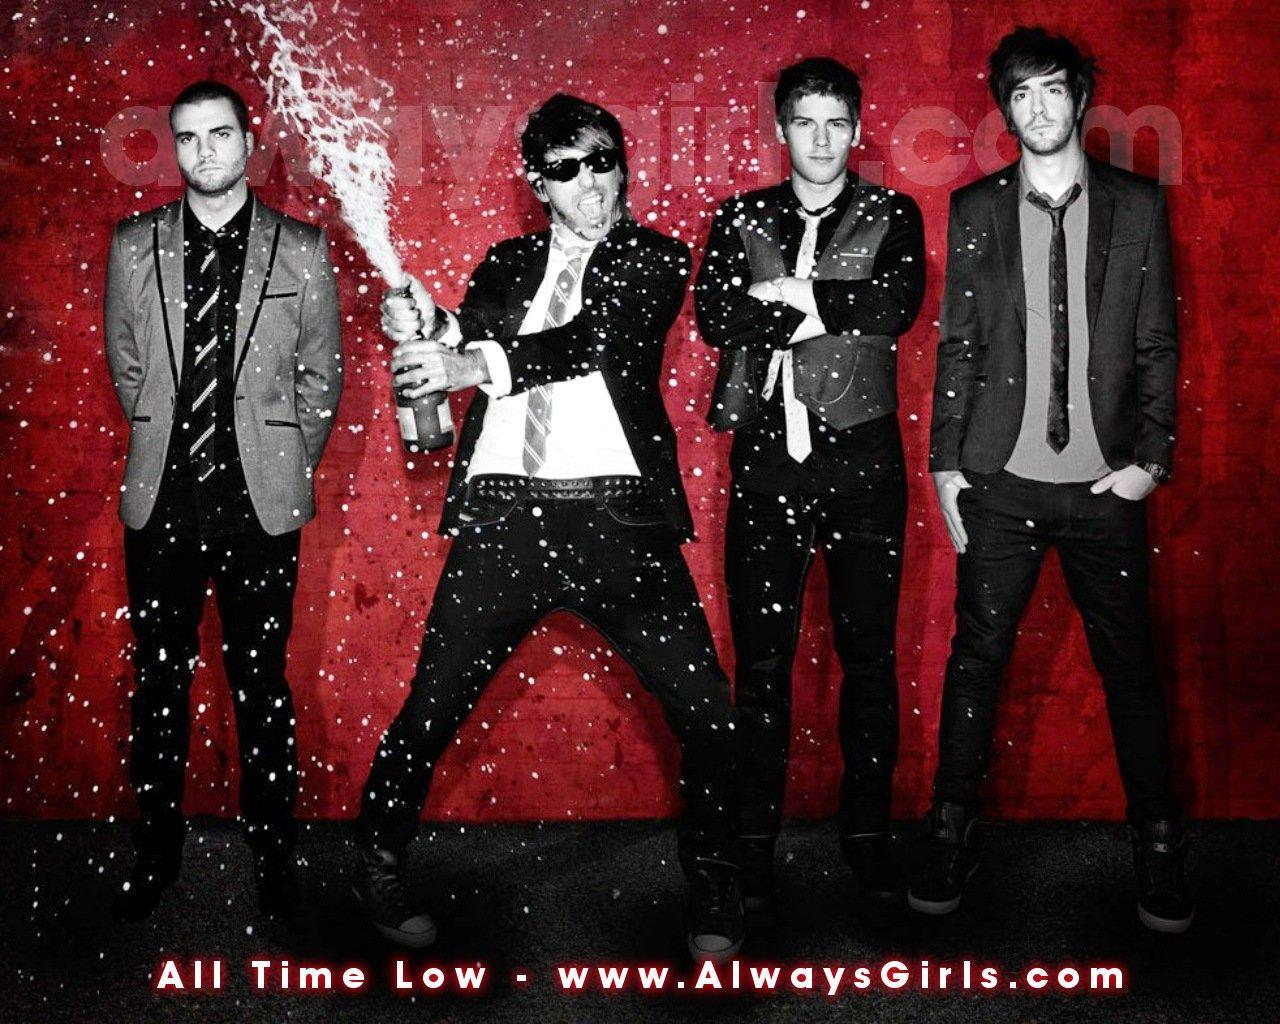 All Time Low Wallpapers - Wallpaper Cave